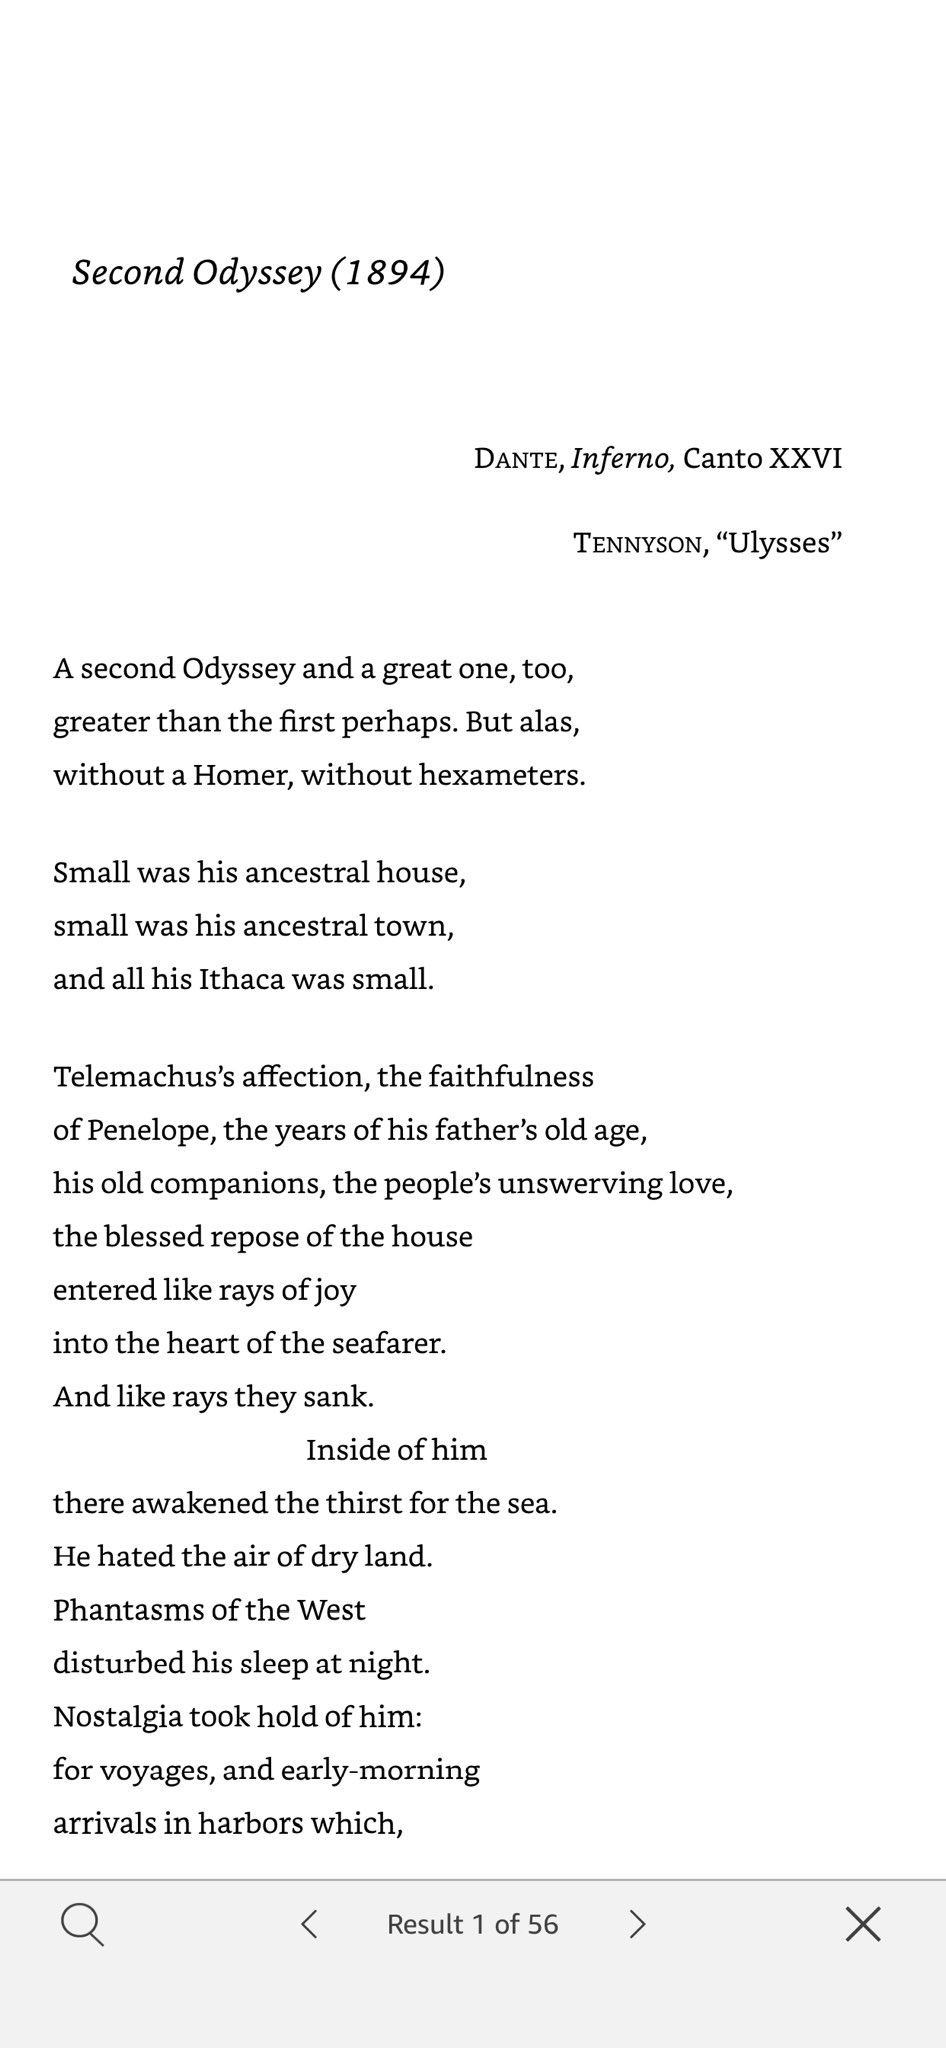 "Admirers of #Cavafy's ""Ithaca"" (1911)—perhaps his most famous poem—might be interested to know that it's a rewrite of an 1894 work in which his interest in the #Odyssey myth & its reworking by #Dante & #Tennyson is already evident. Not a great poem—except for the amazing kicker: https://t.co/4MT8KBGA4B"